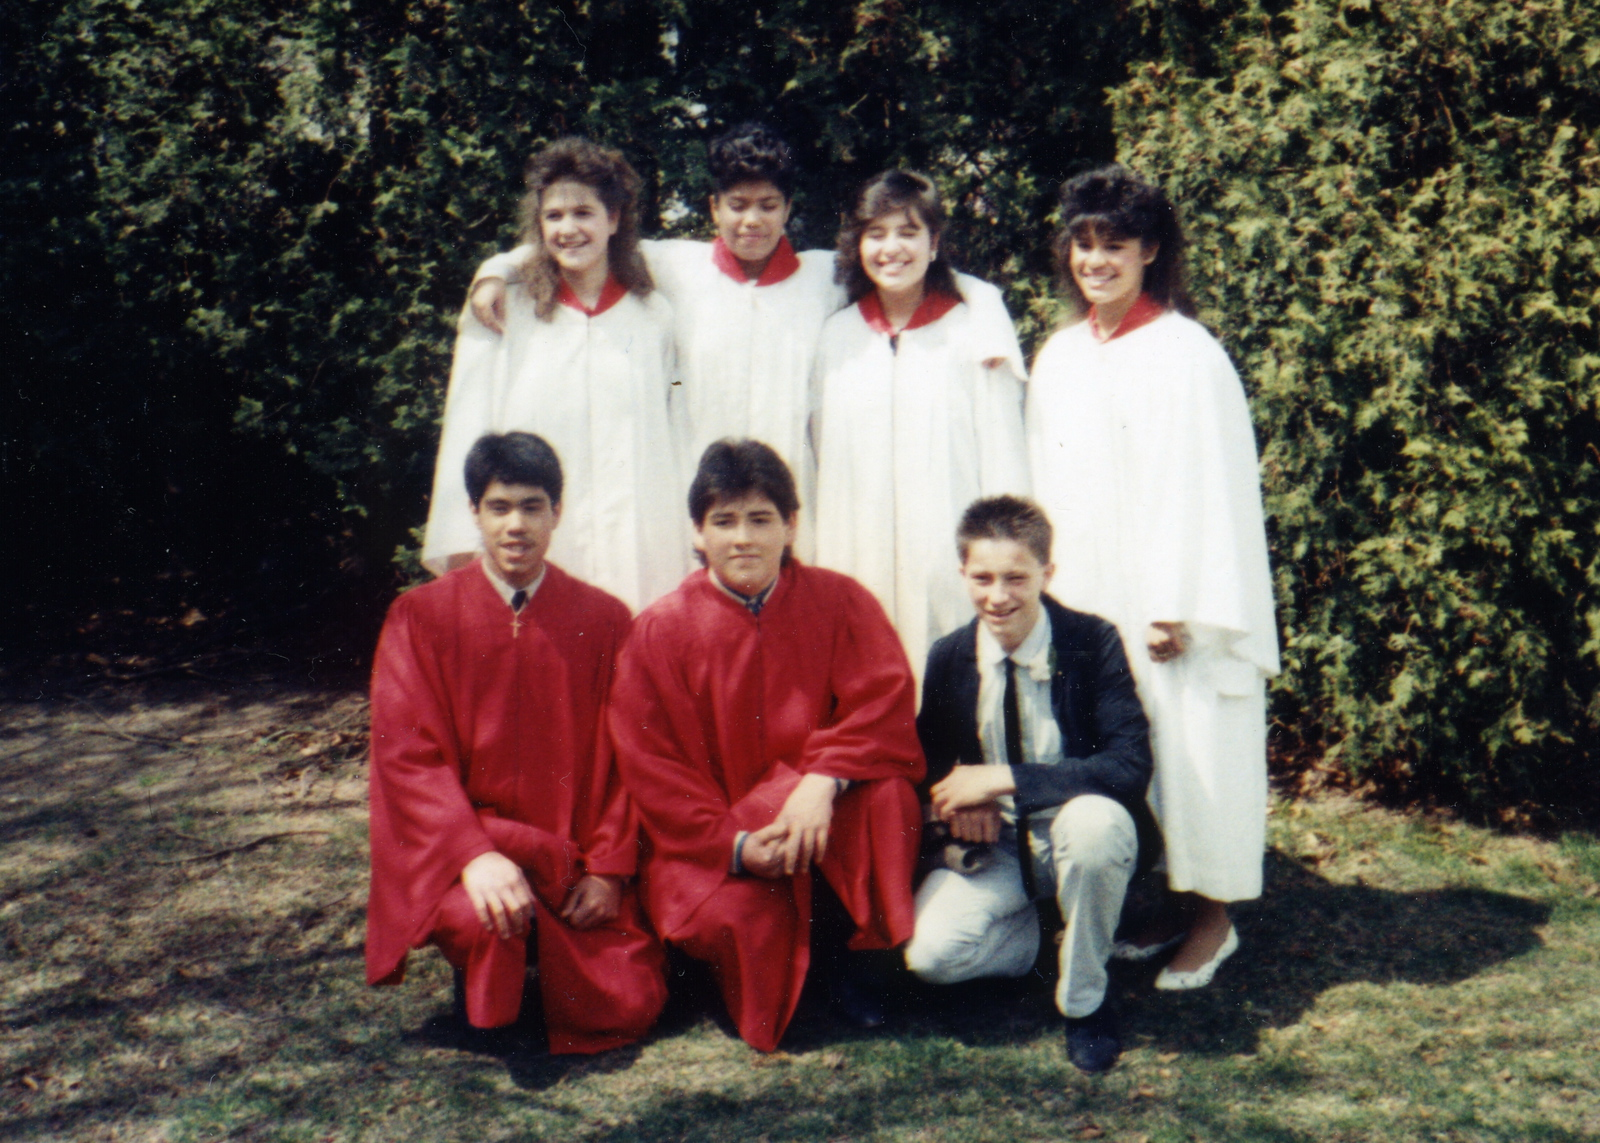 1987 06 - Dave and Tamara's confirmation 012